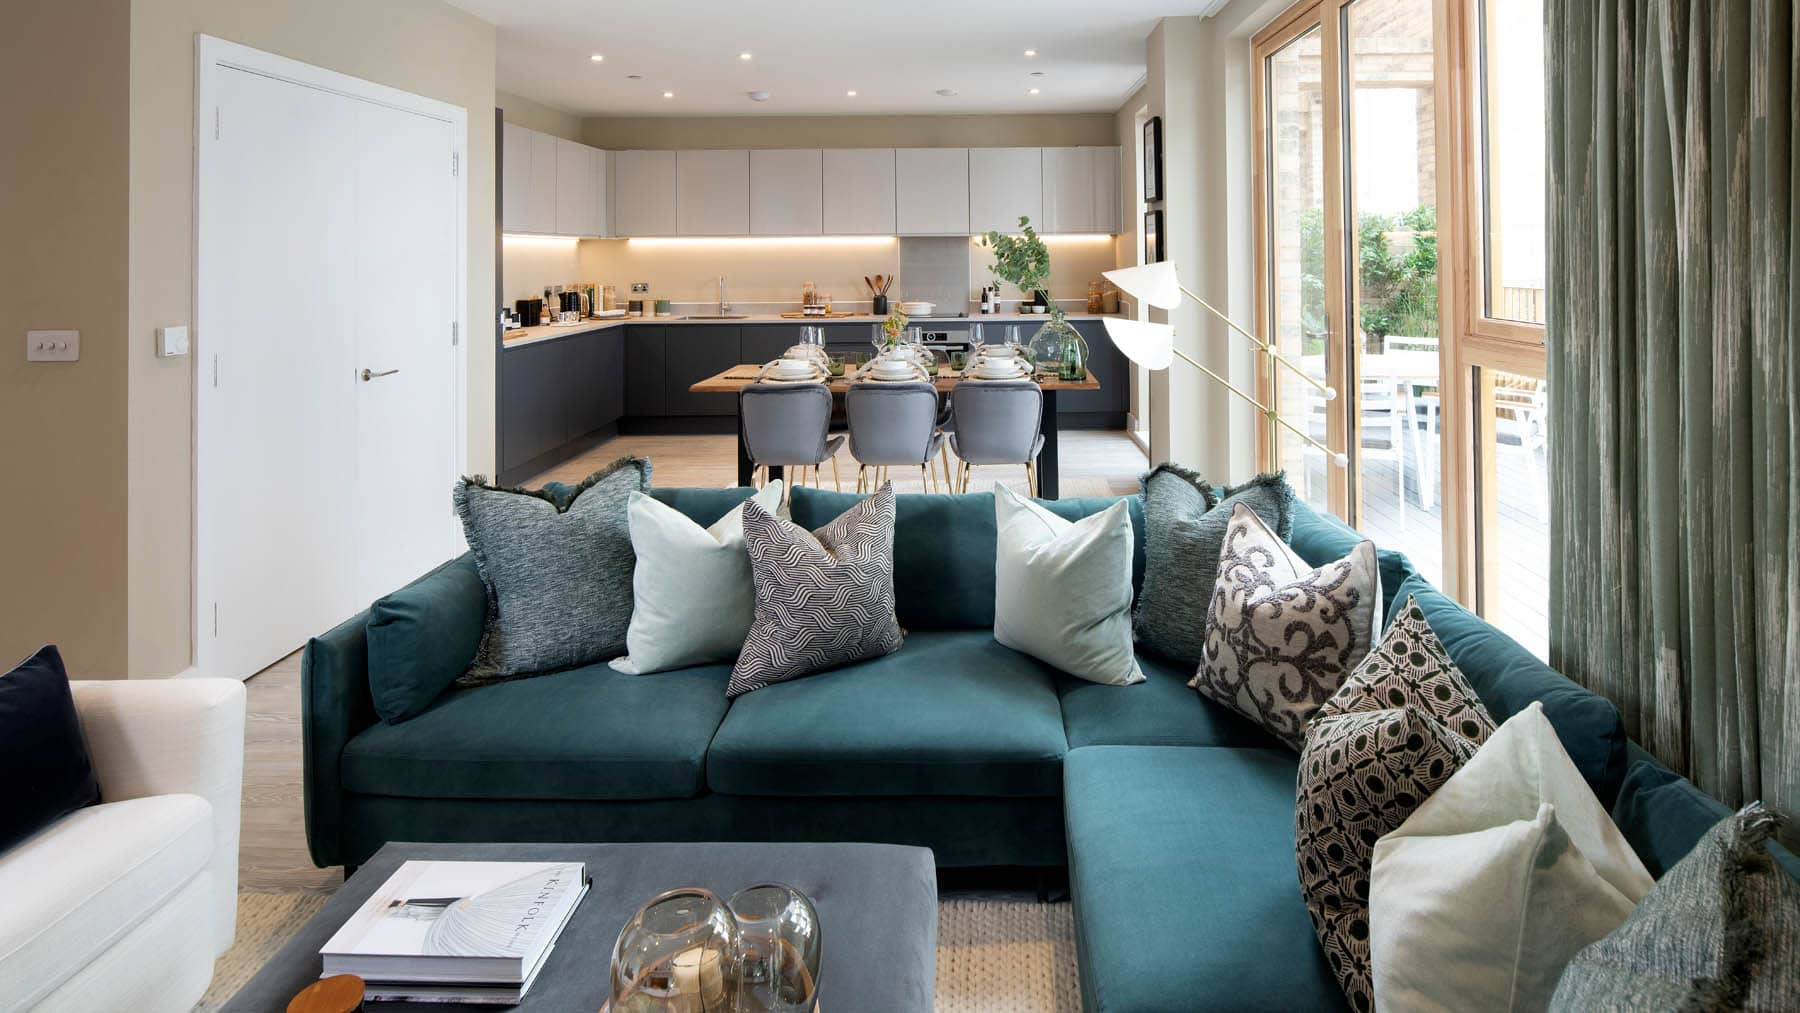 Internal photography of Peabody's Southmere - Help to Buy homes available on Share to Buy